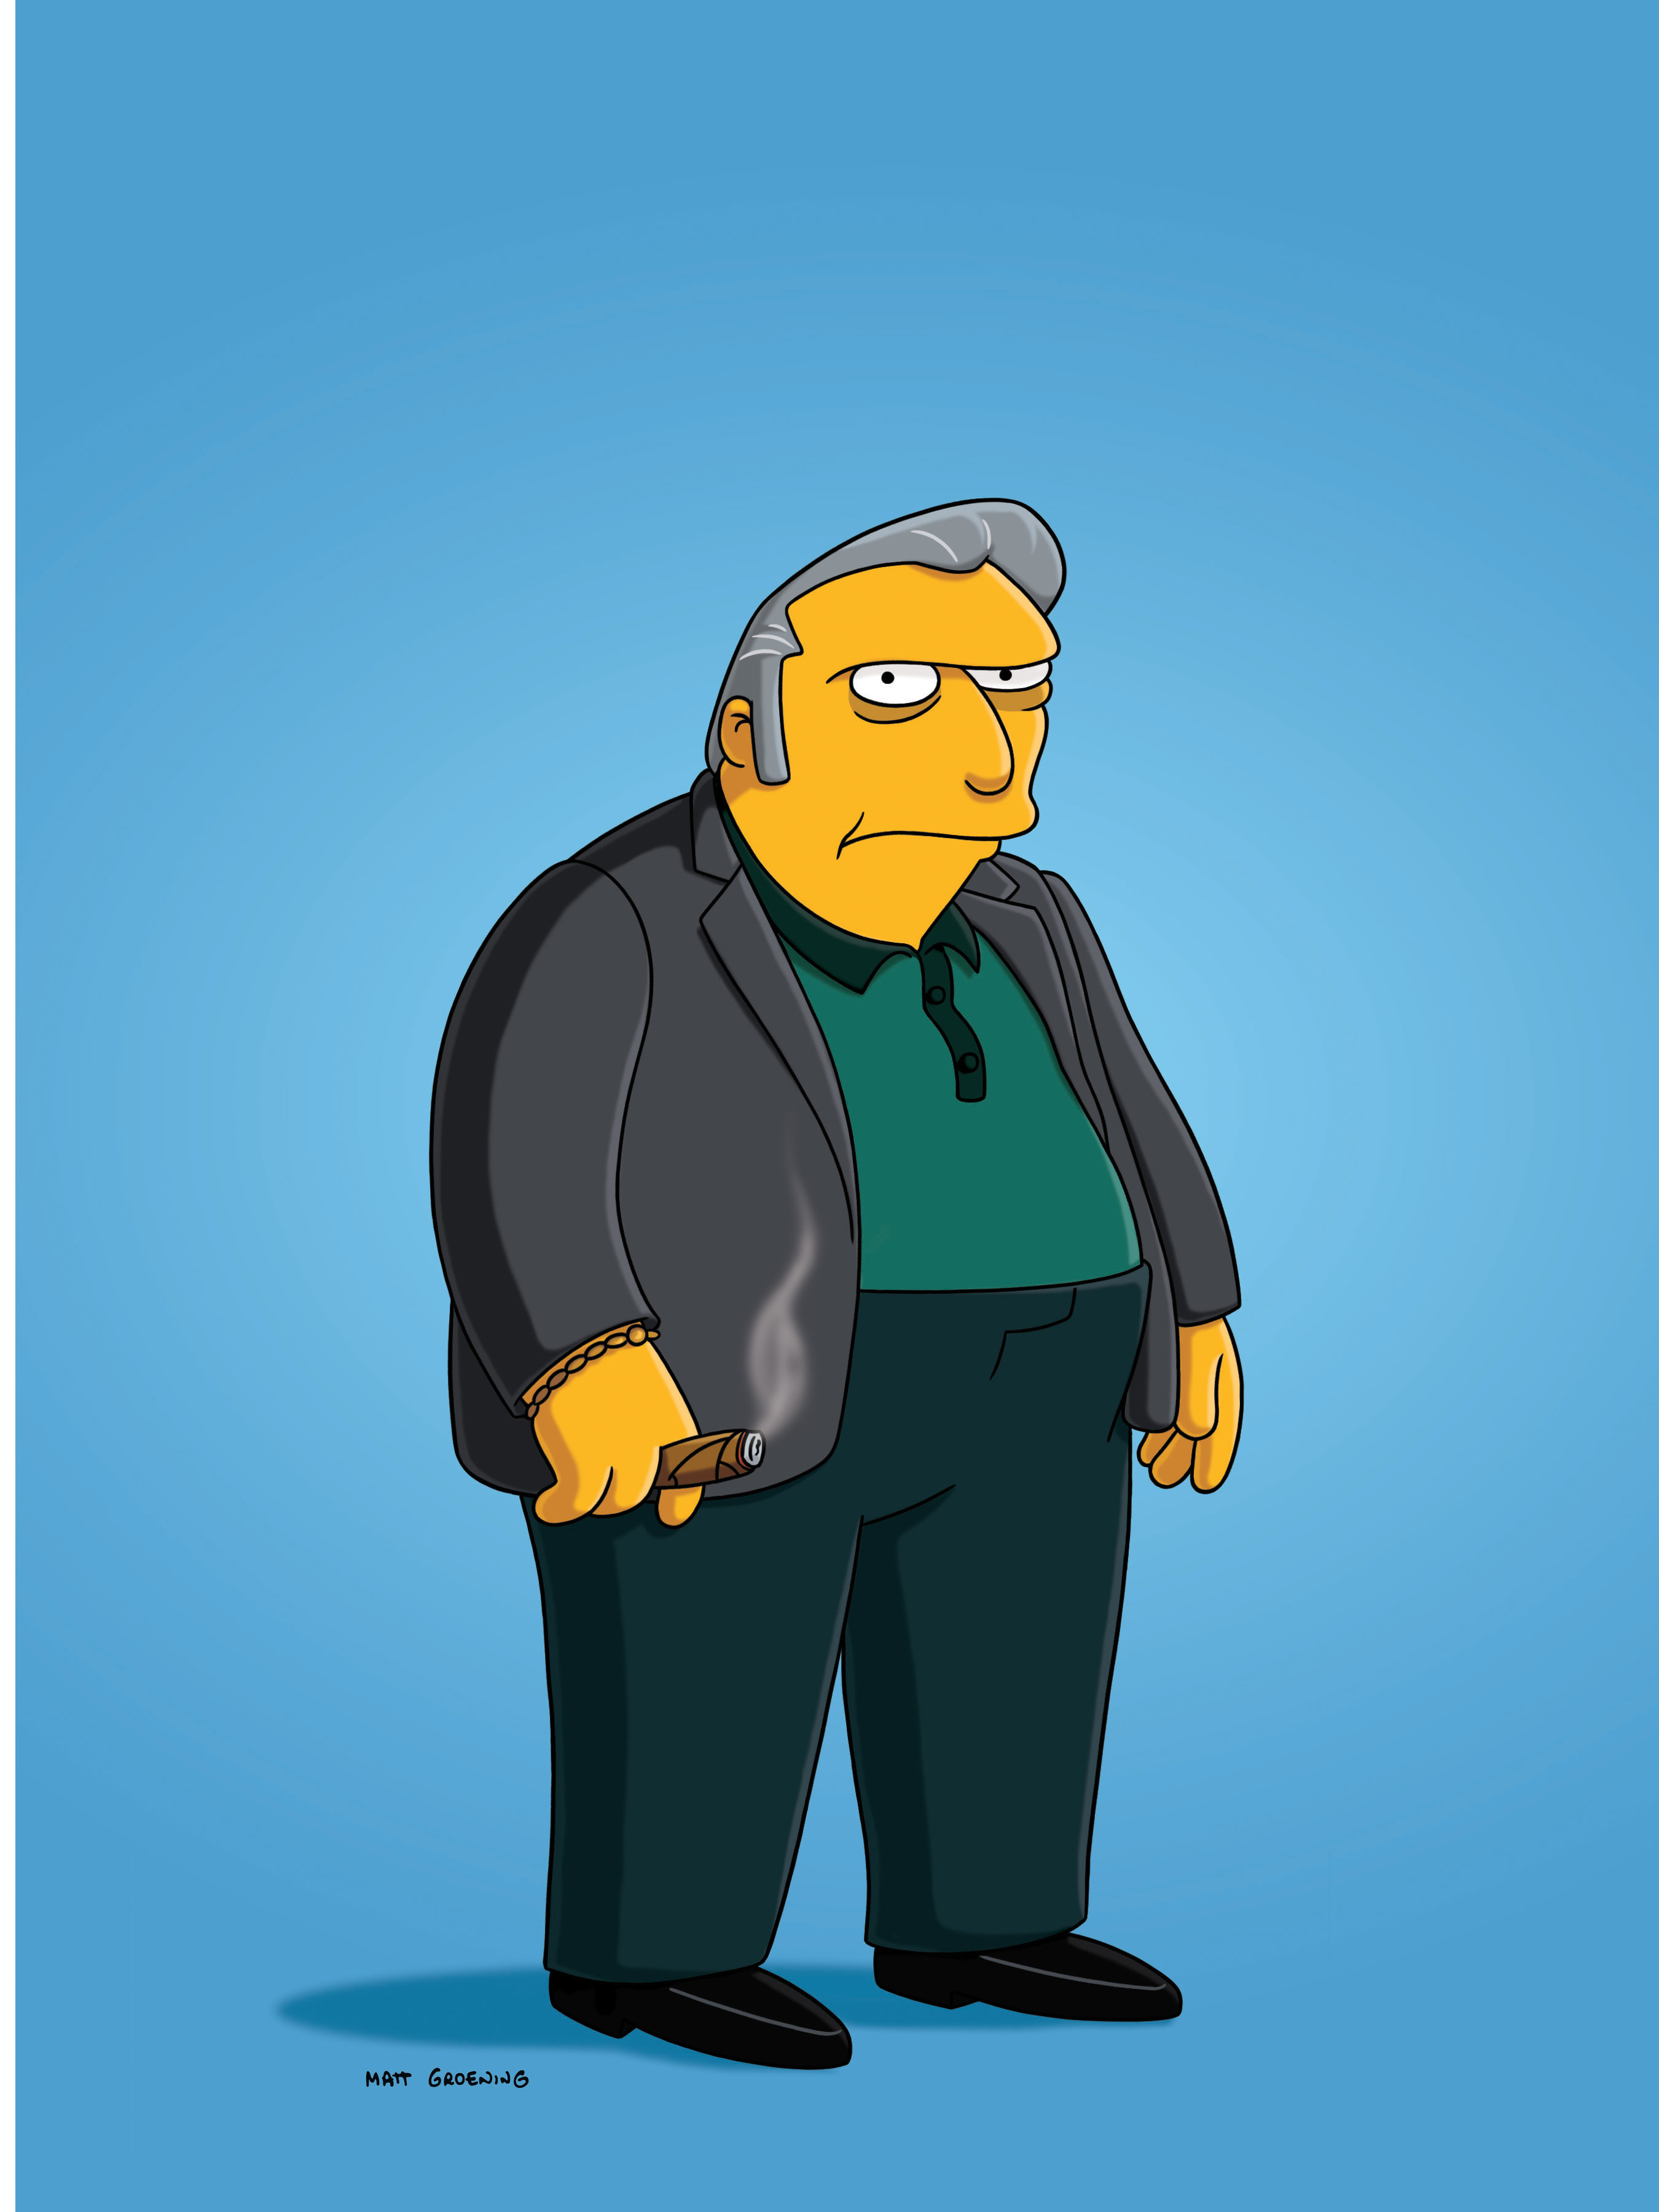 Pig Ear Notch Chart : notch, chart, Simpsons':, Episodes, Rolling, Stone